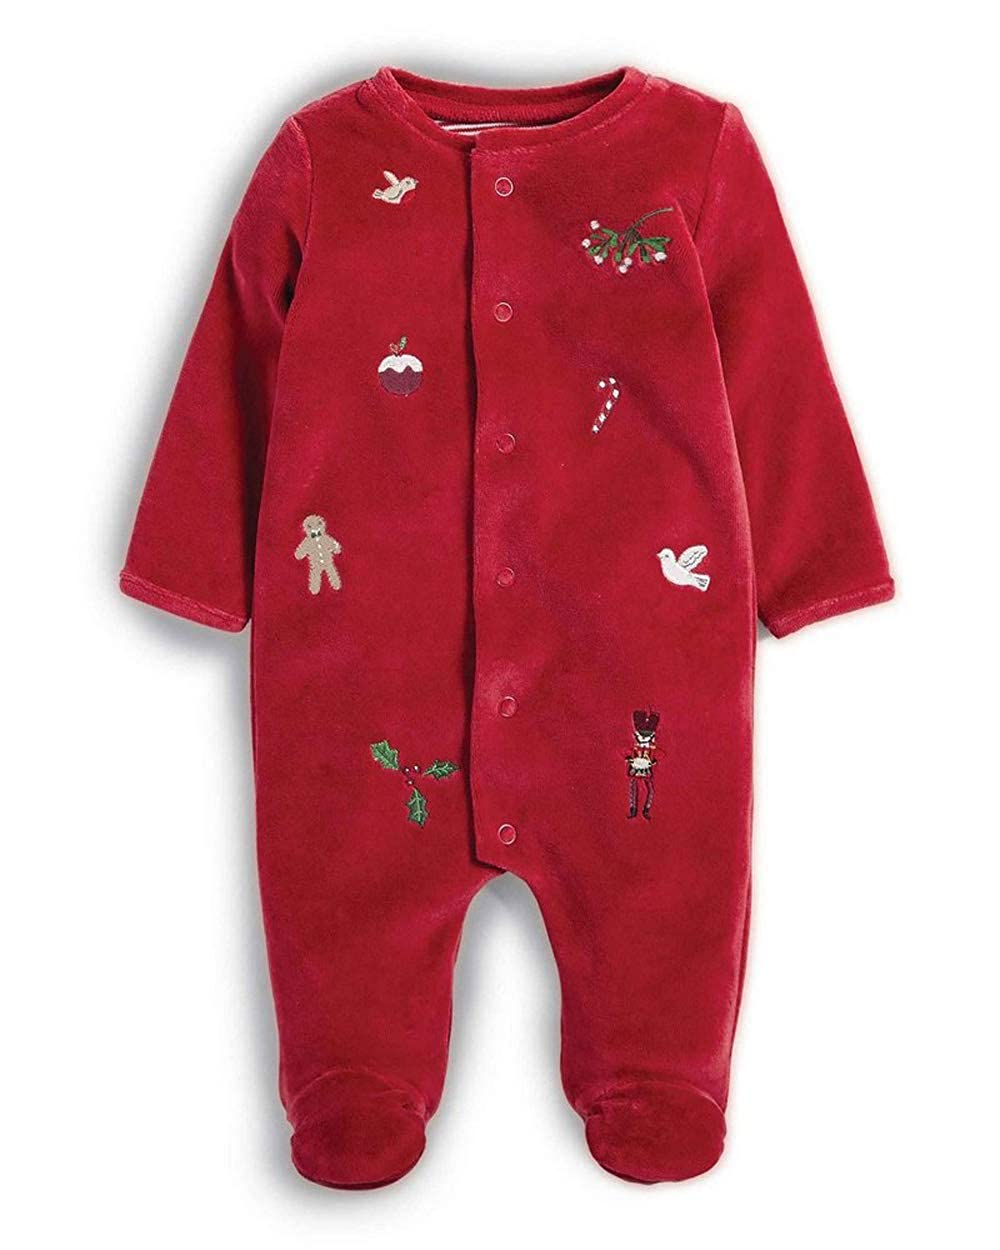 Mamas & Papas Red Velour All in One Embroidery Detailing Christmas Sleepsuit - 3-6 Months